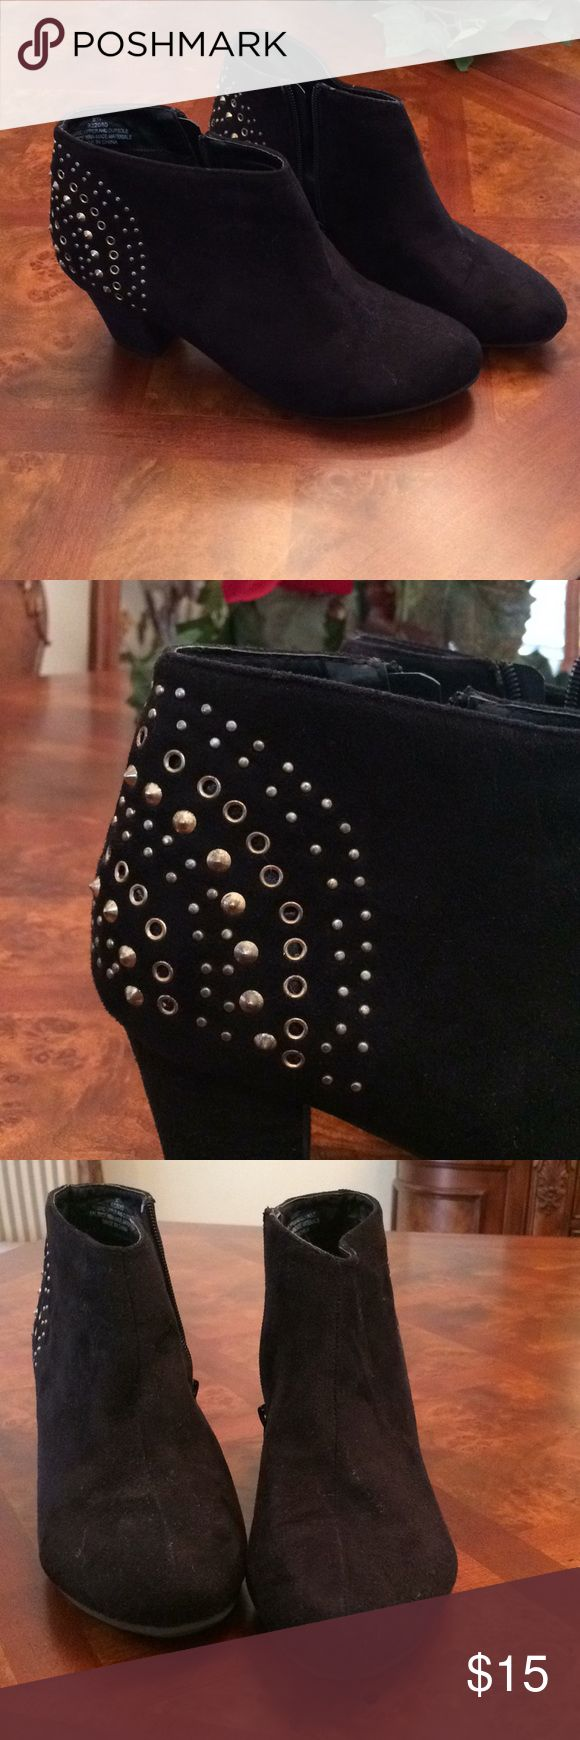 Ladies Black Suede Booties. Excellent condition, zipper on sides. Decorative brass studs at heels. 2 1/2 inch heel. Please note that these are 9 WIDE. Lane Bryant Shoes Ankle Boots & Booties